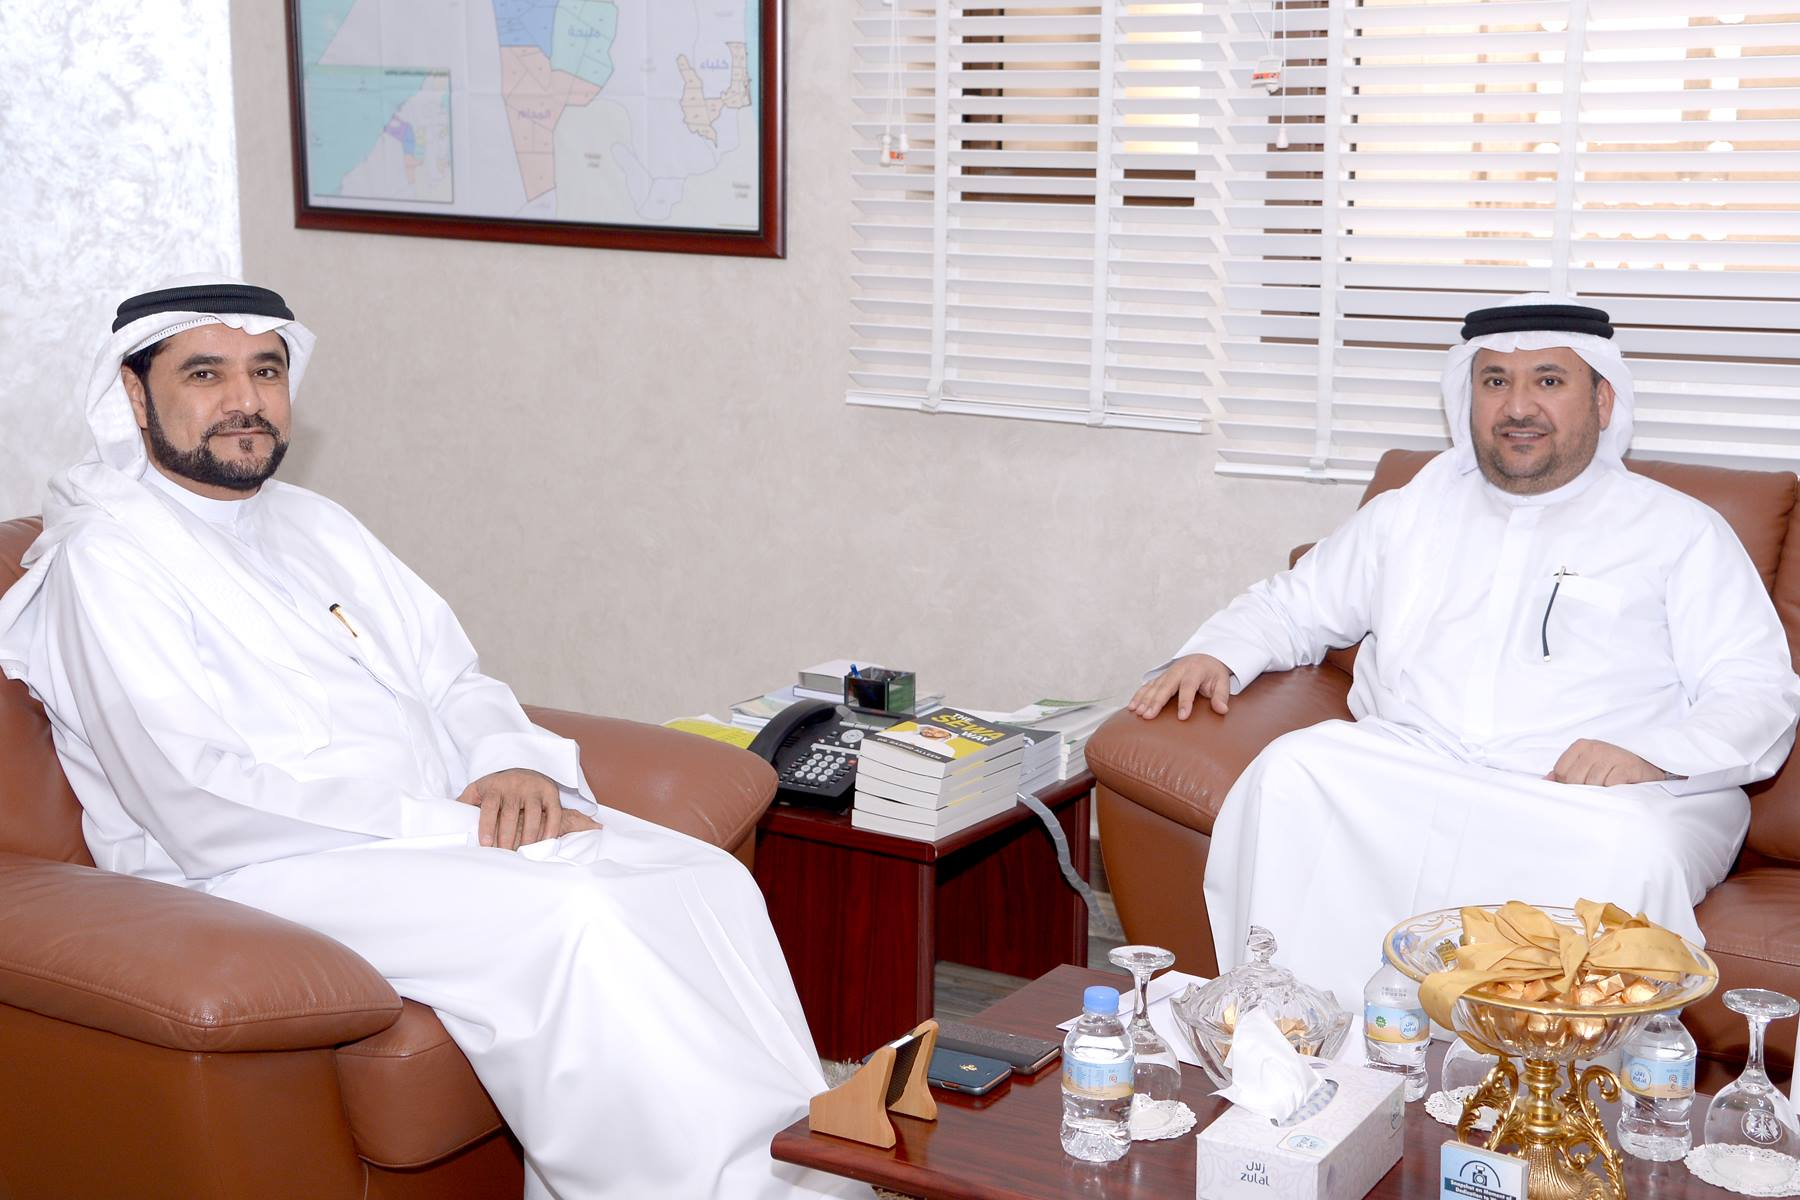 H.E. Majid Al Jeneid – Director General of Sharjah Cooperative Society